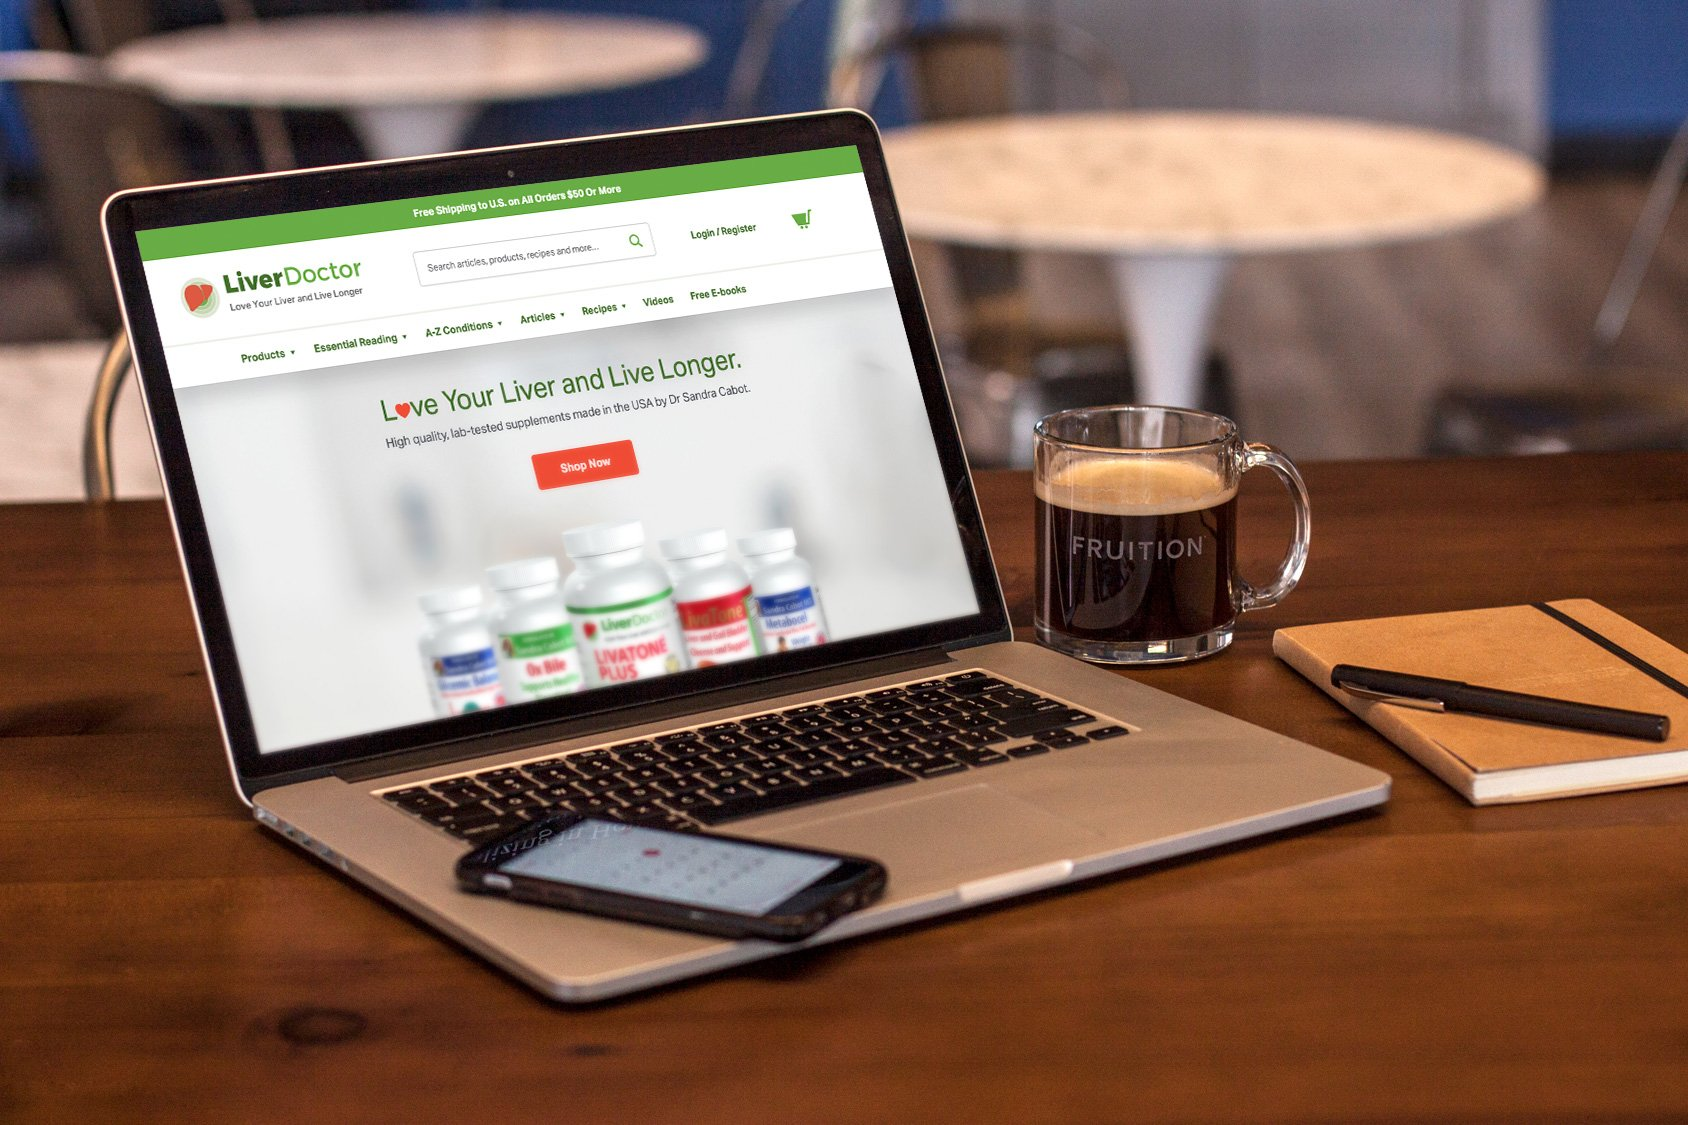 Fruition Growth releases new Liver Doctor website, as shown on a laptop screen.